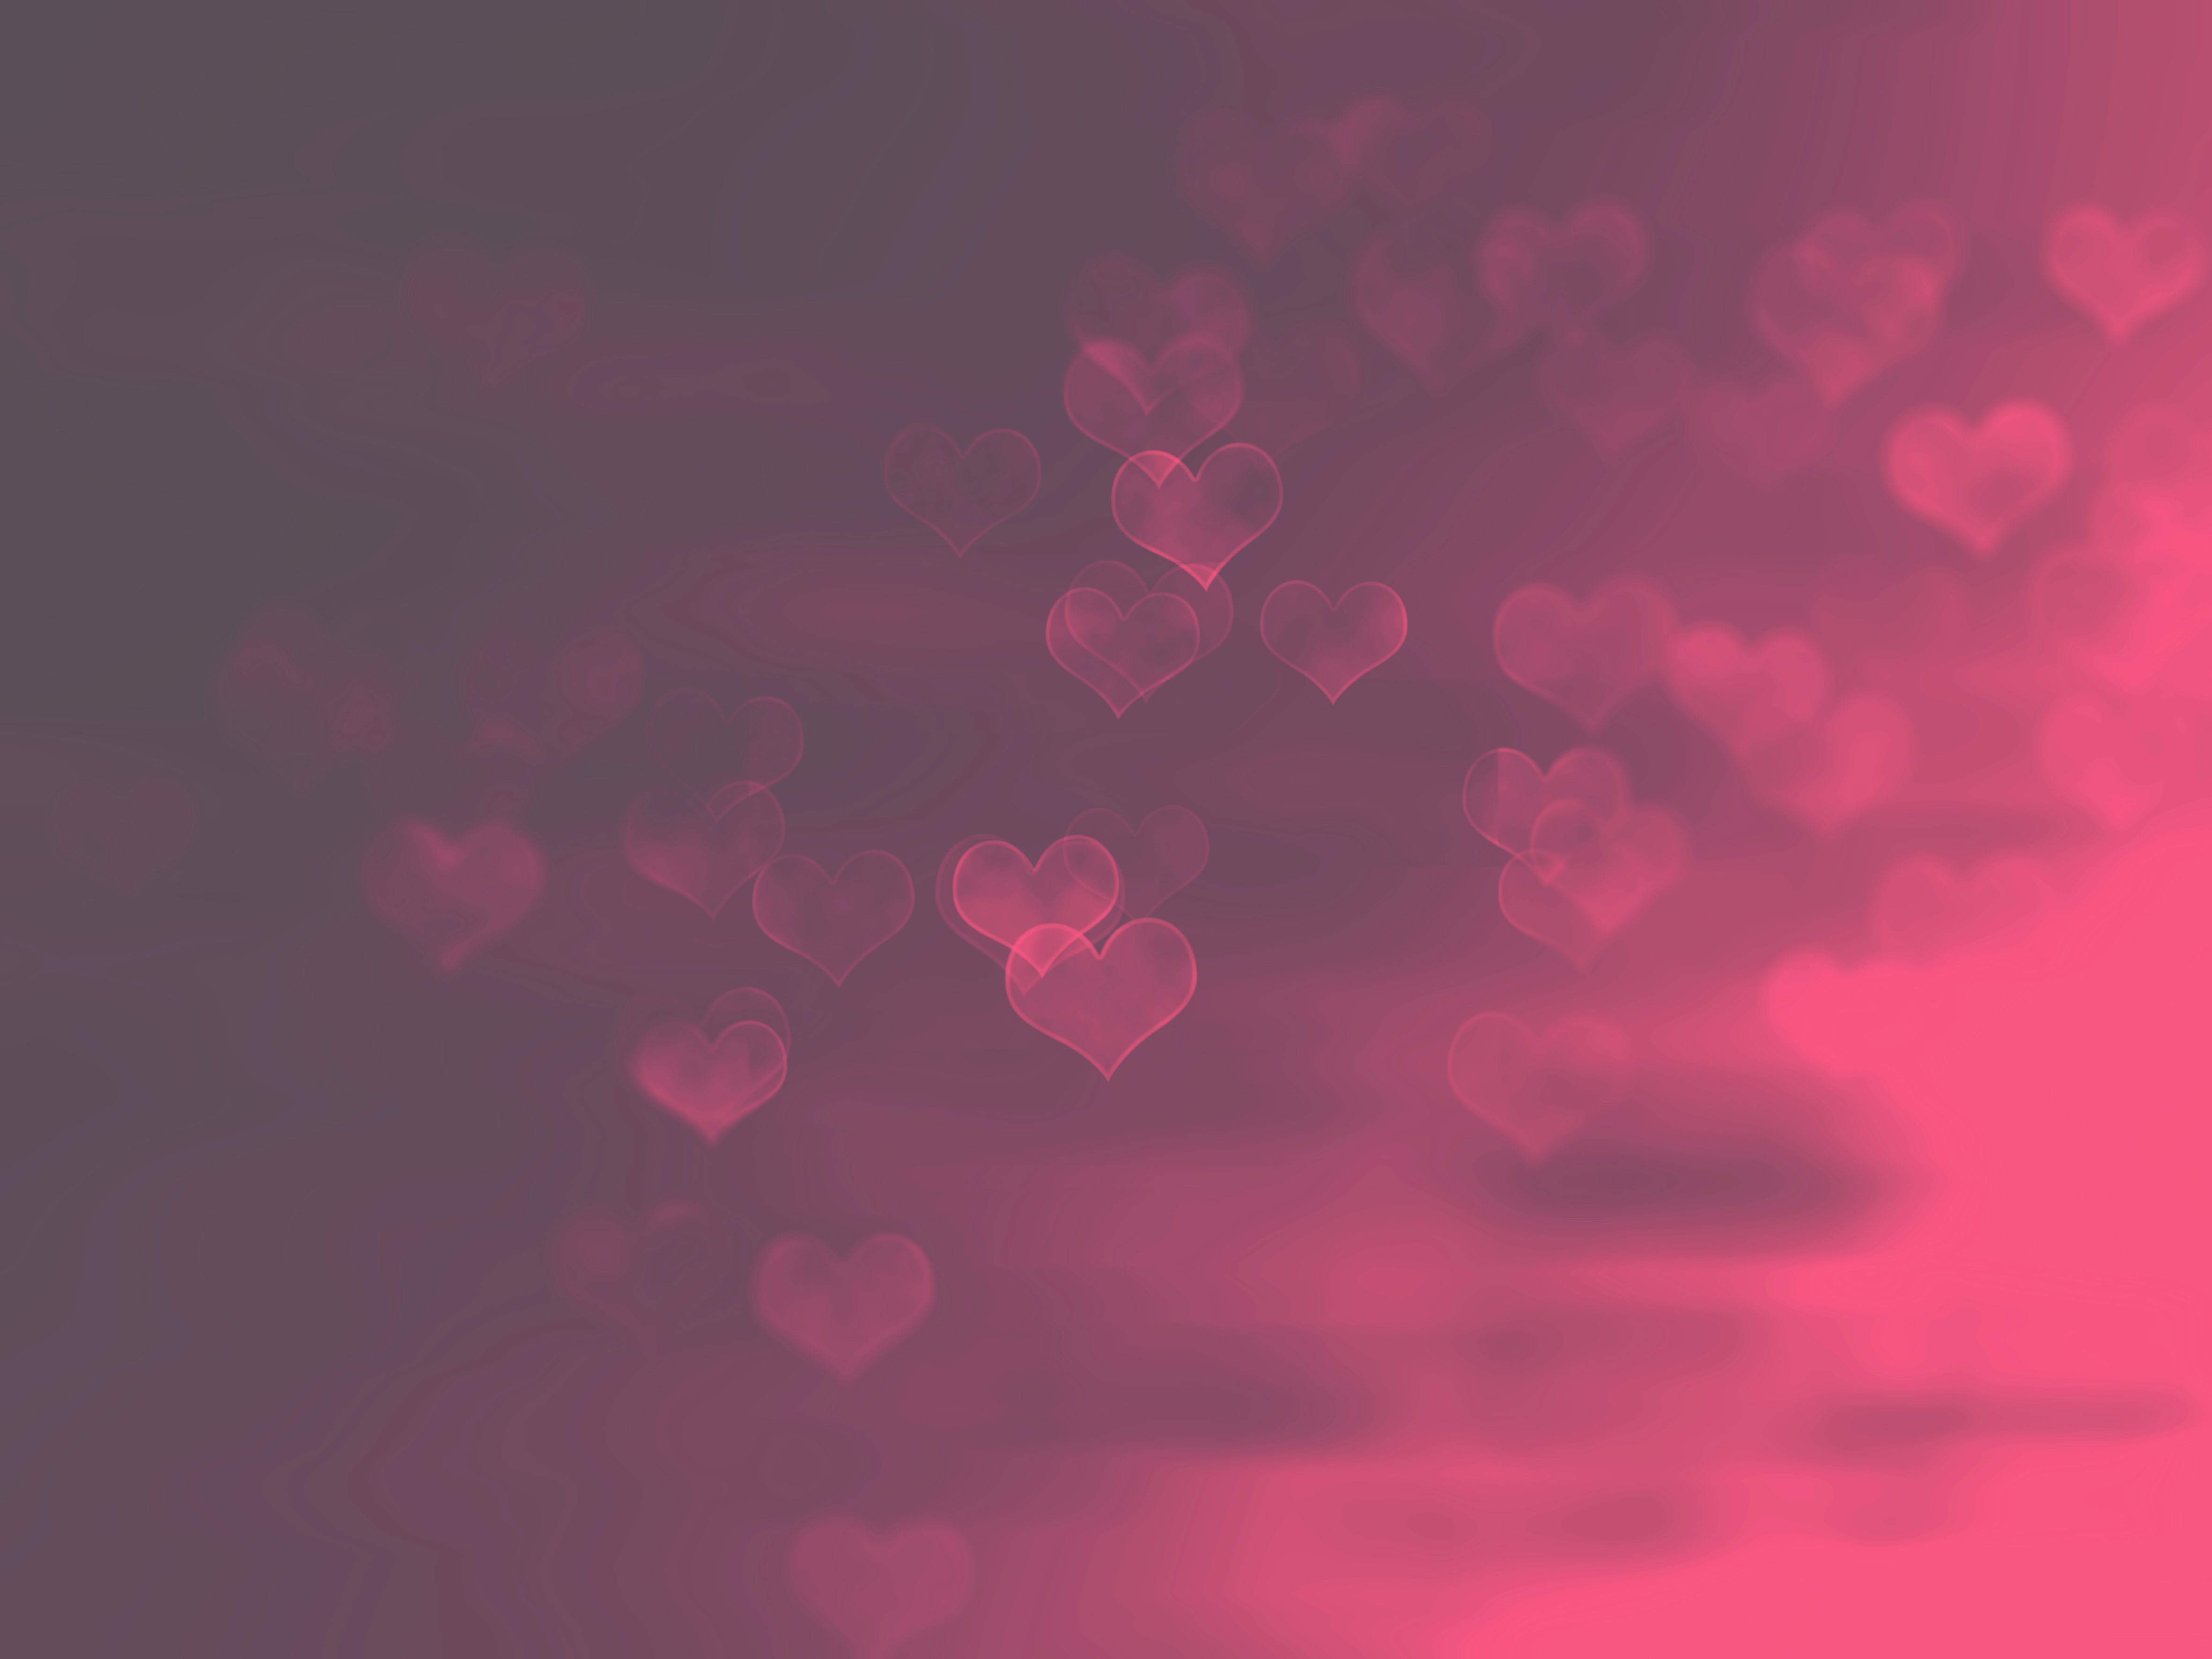 red hearts background tumblr - photo #12